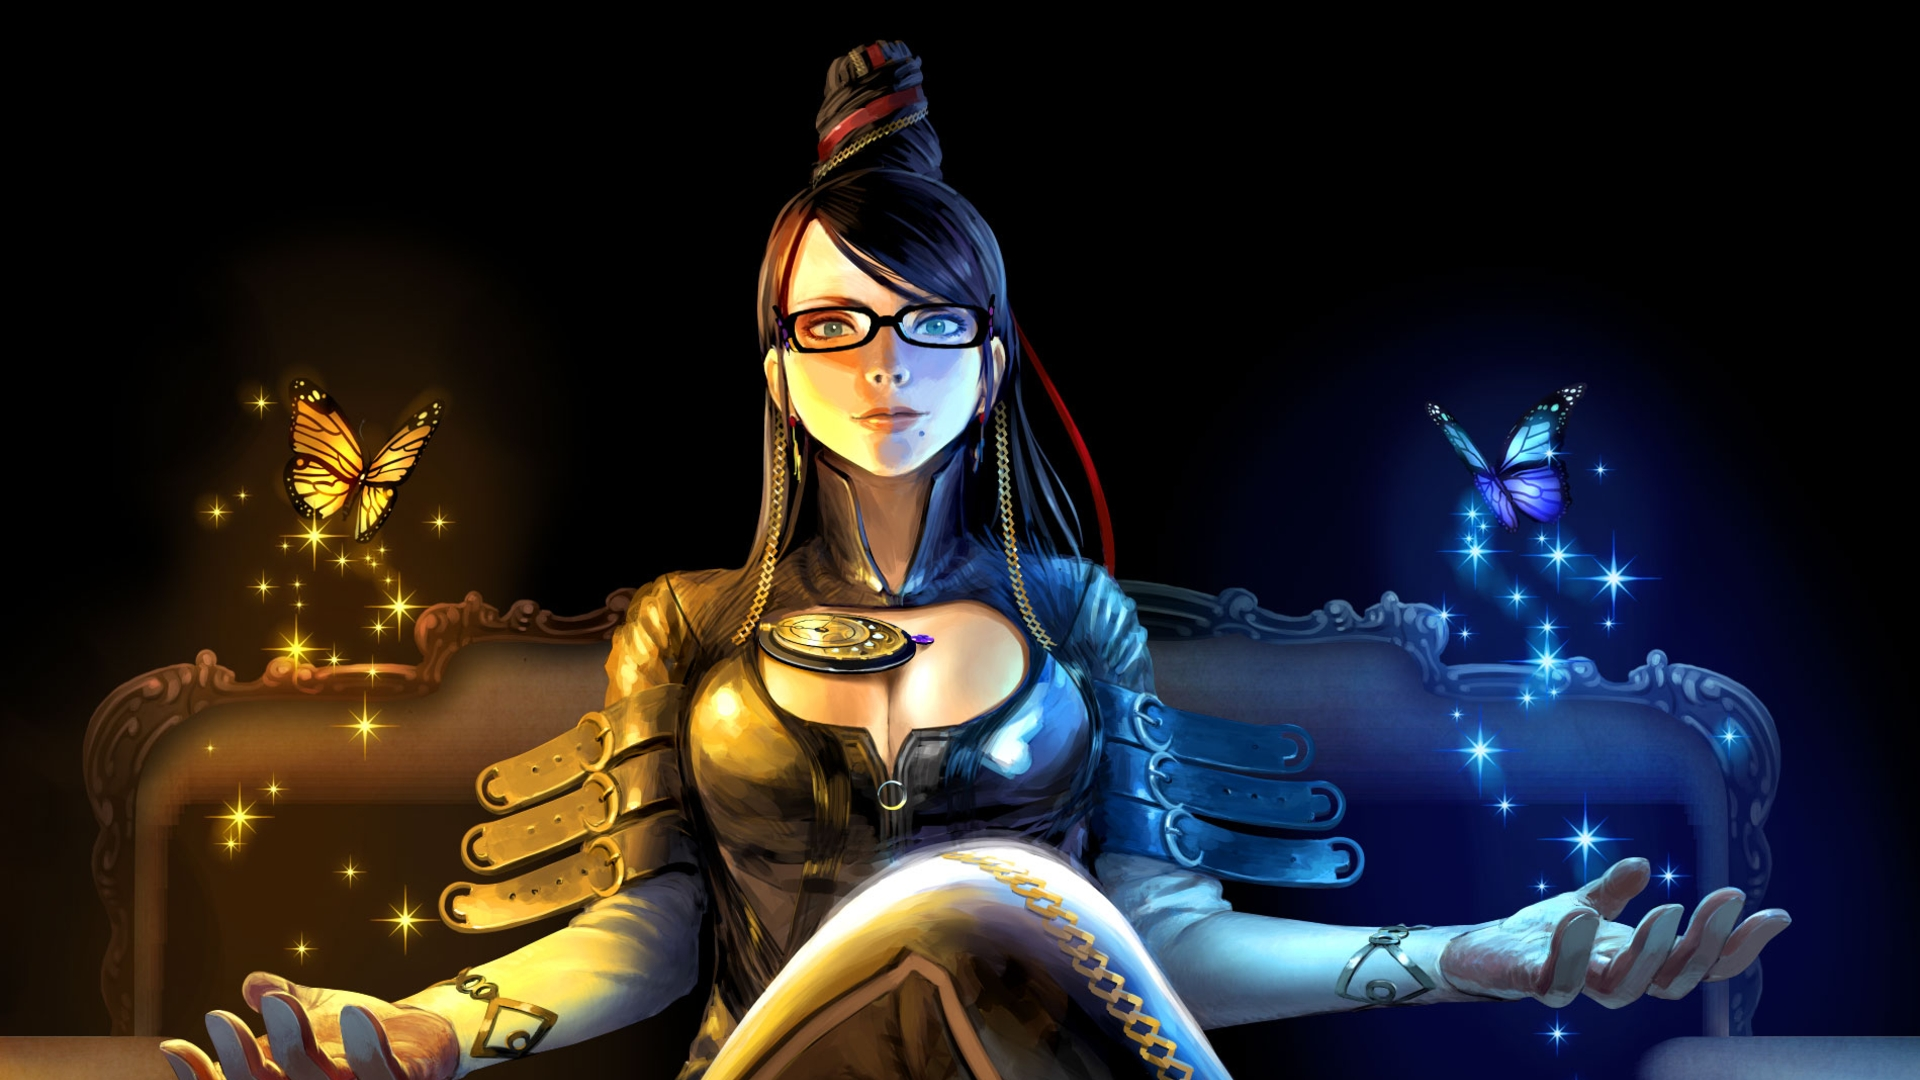 Bayonetta Background for Desktop 1920x1080